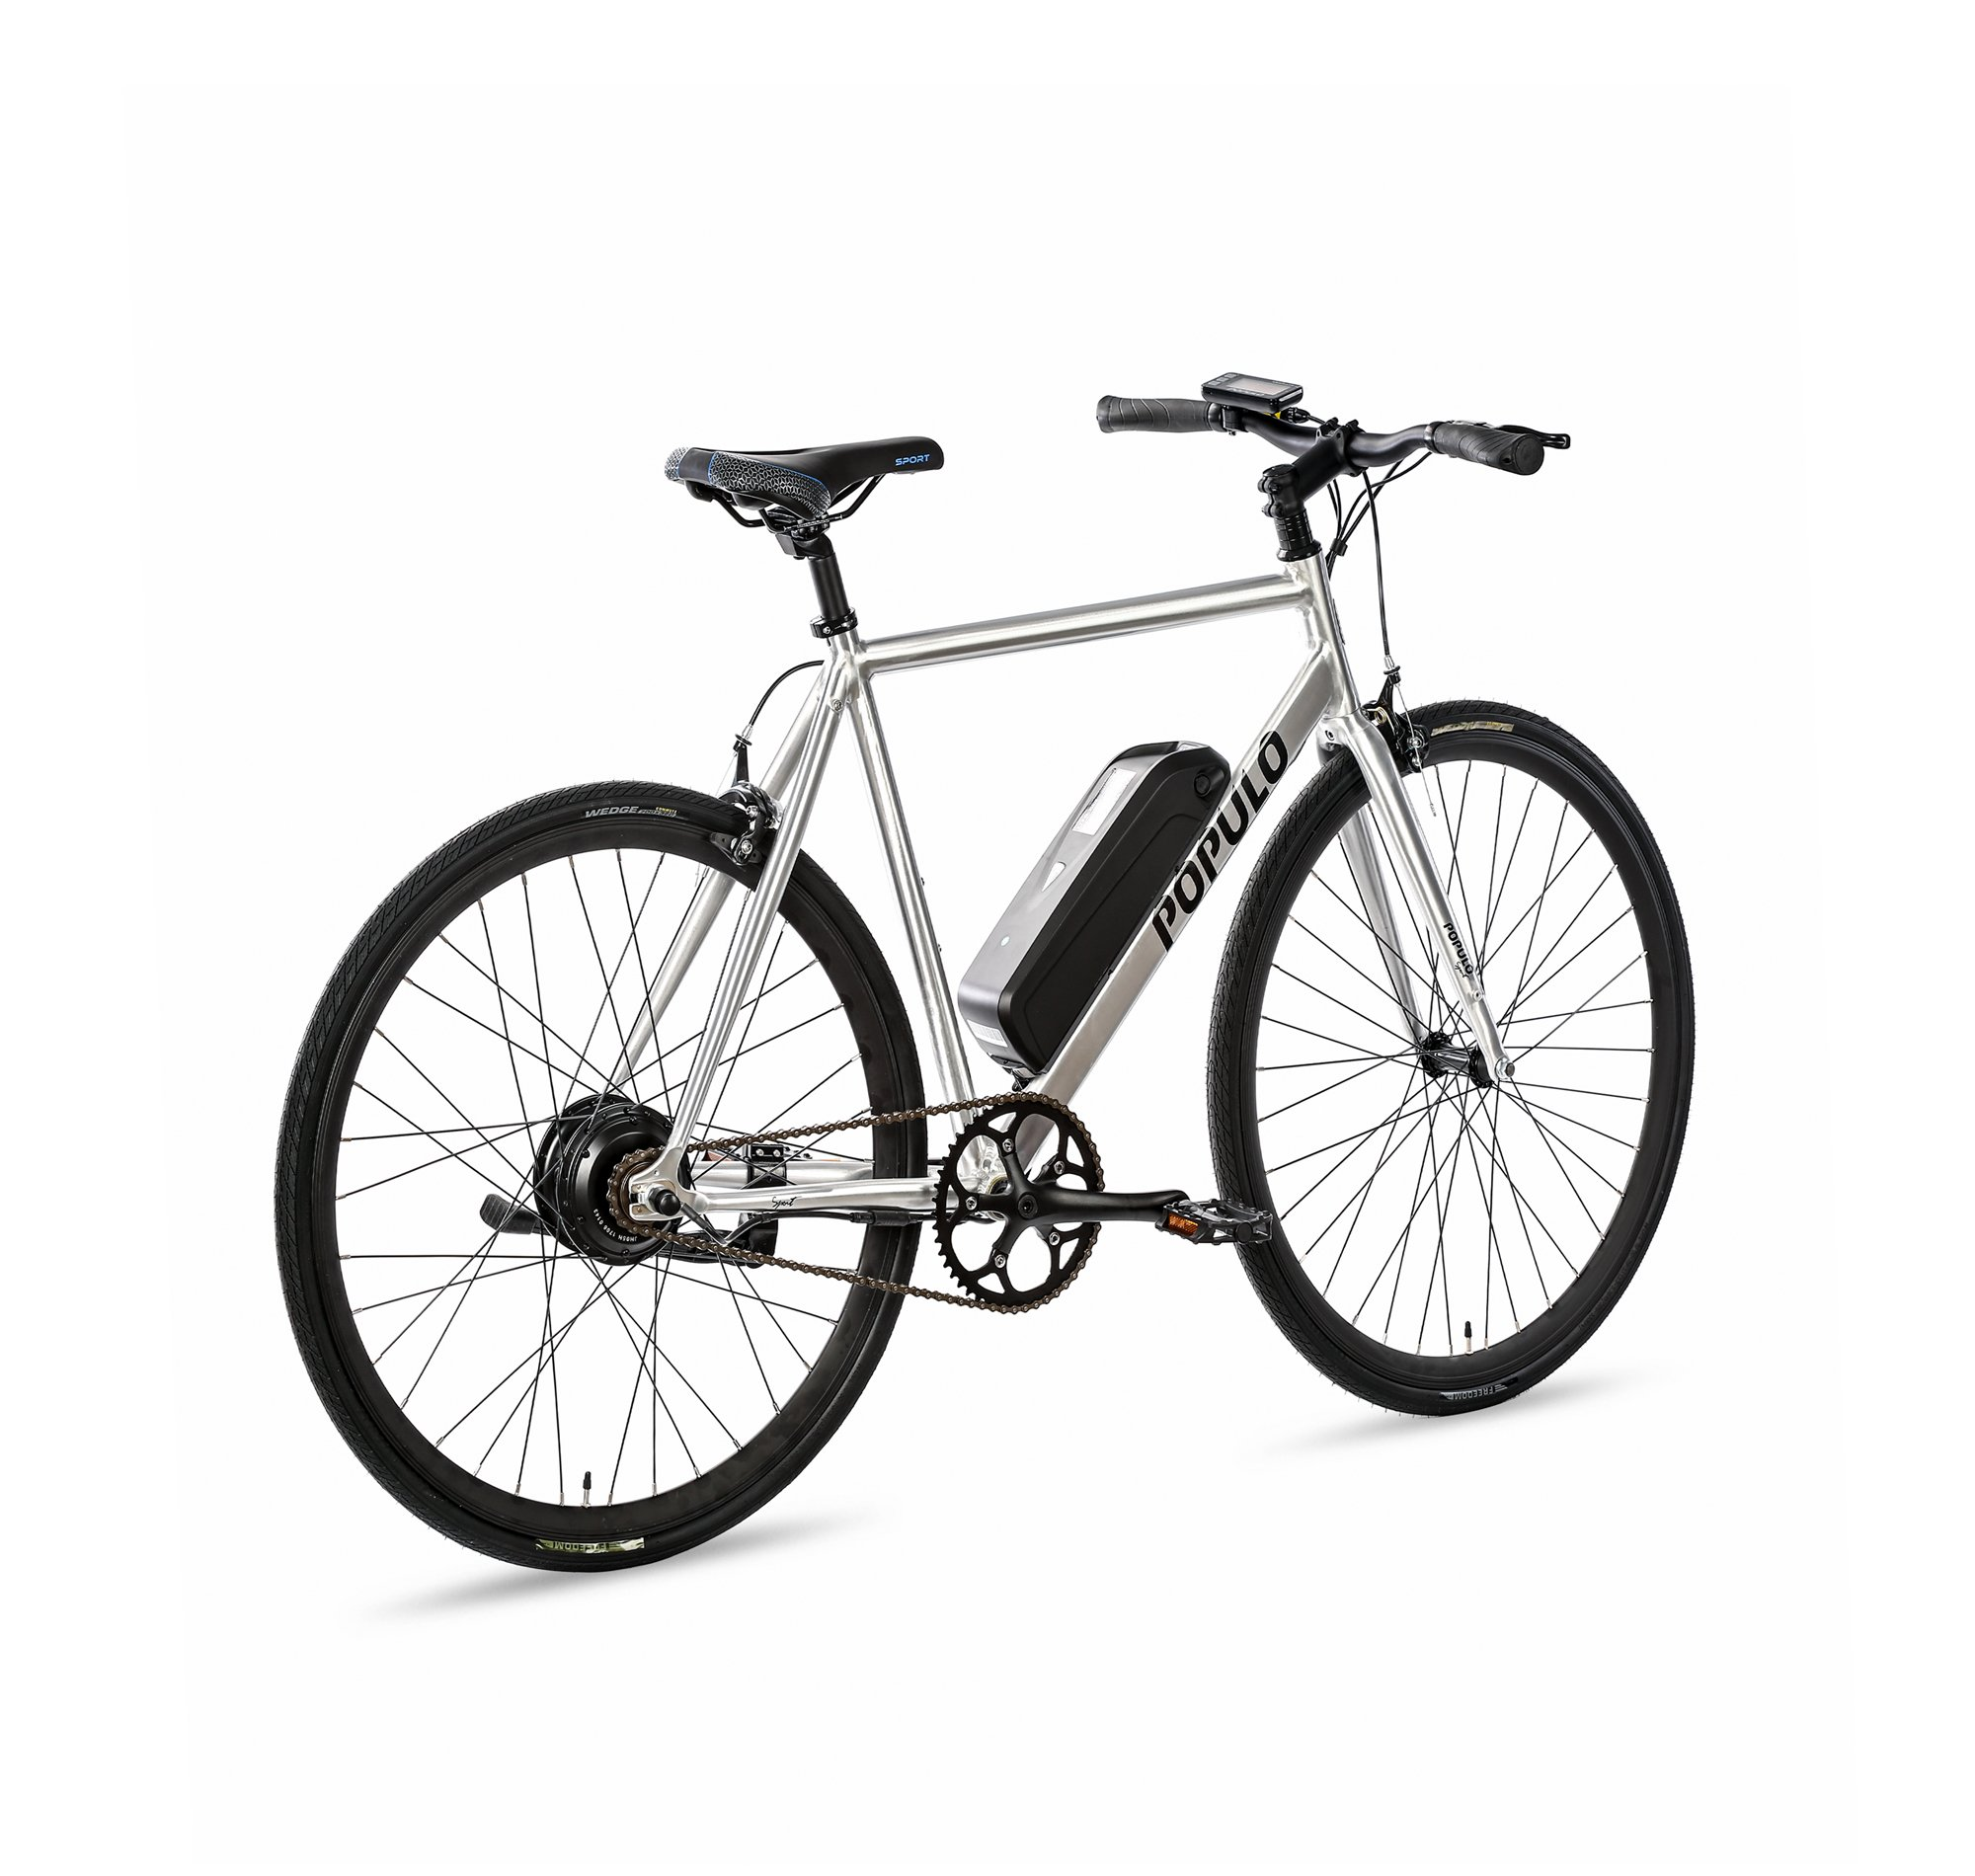 2000x1900 Populo Sport V3 Electric Bicycle